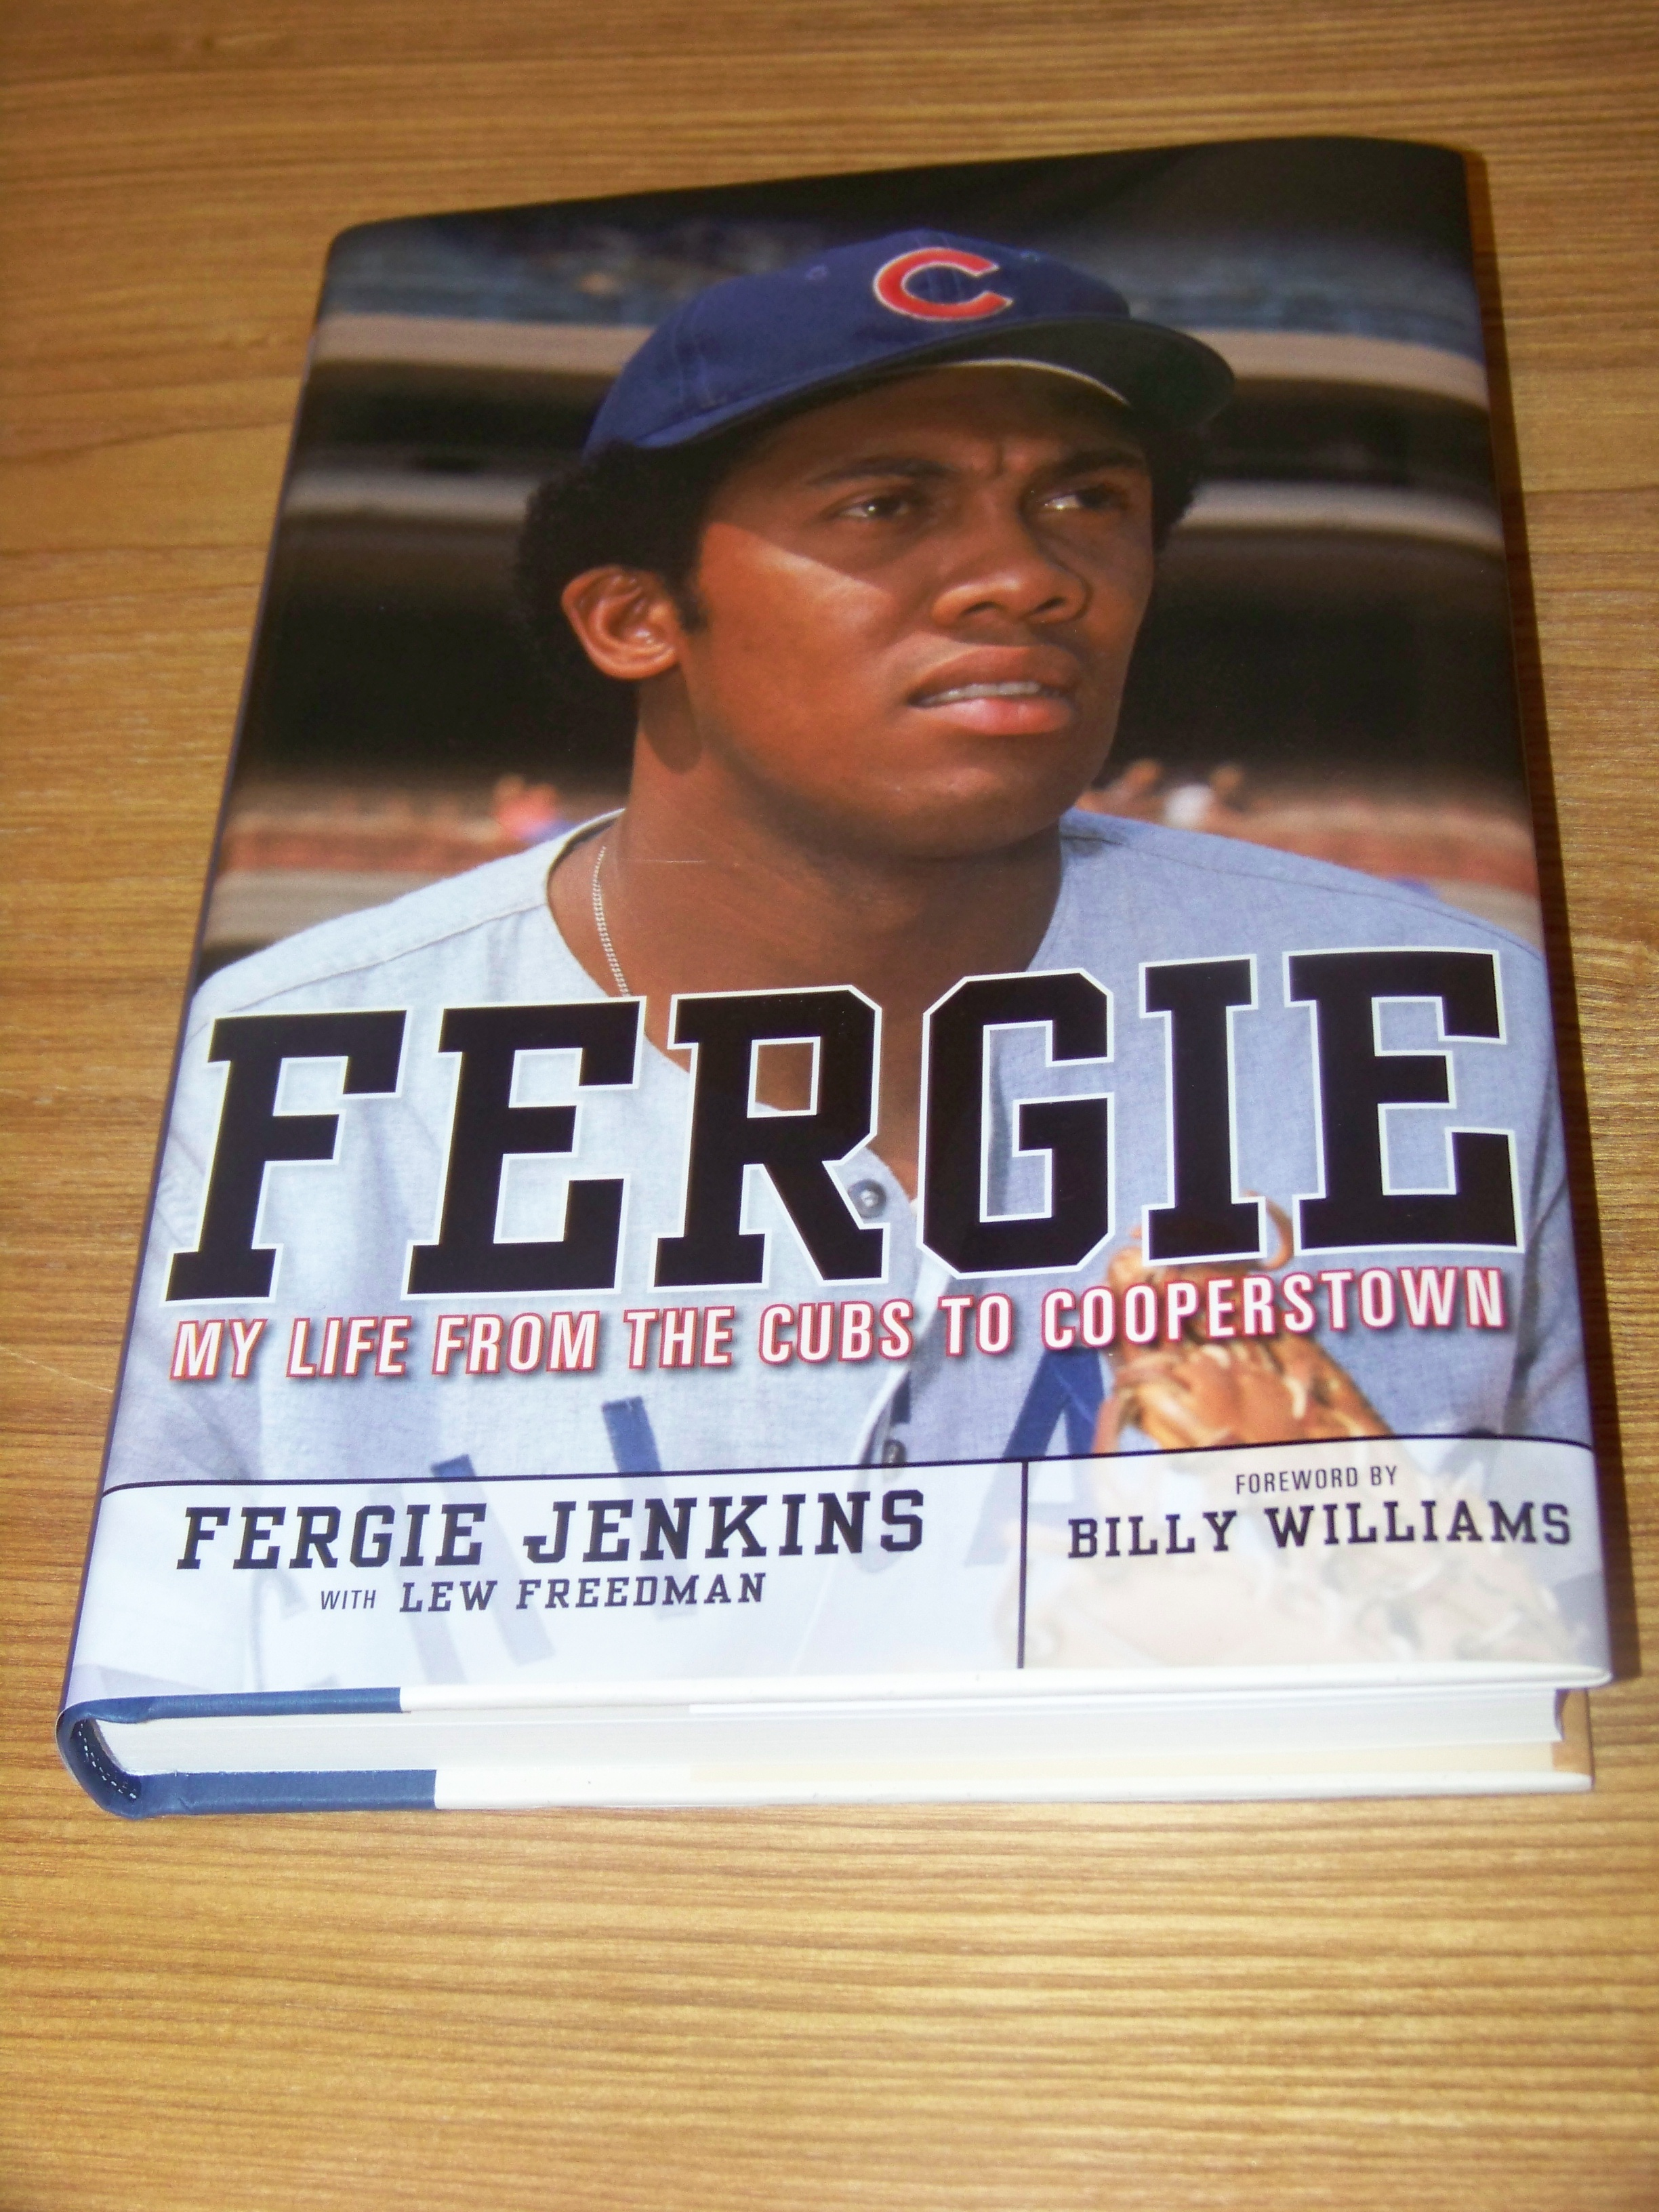 554c7876a41 Fergie Jenkins  My Life From the Cubs to Cooperstown